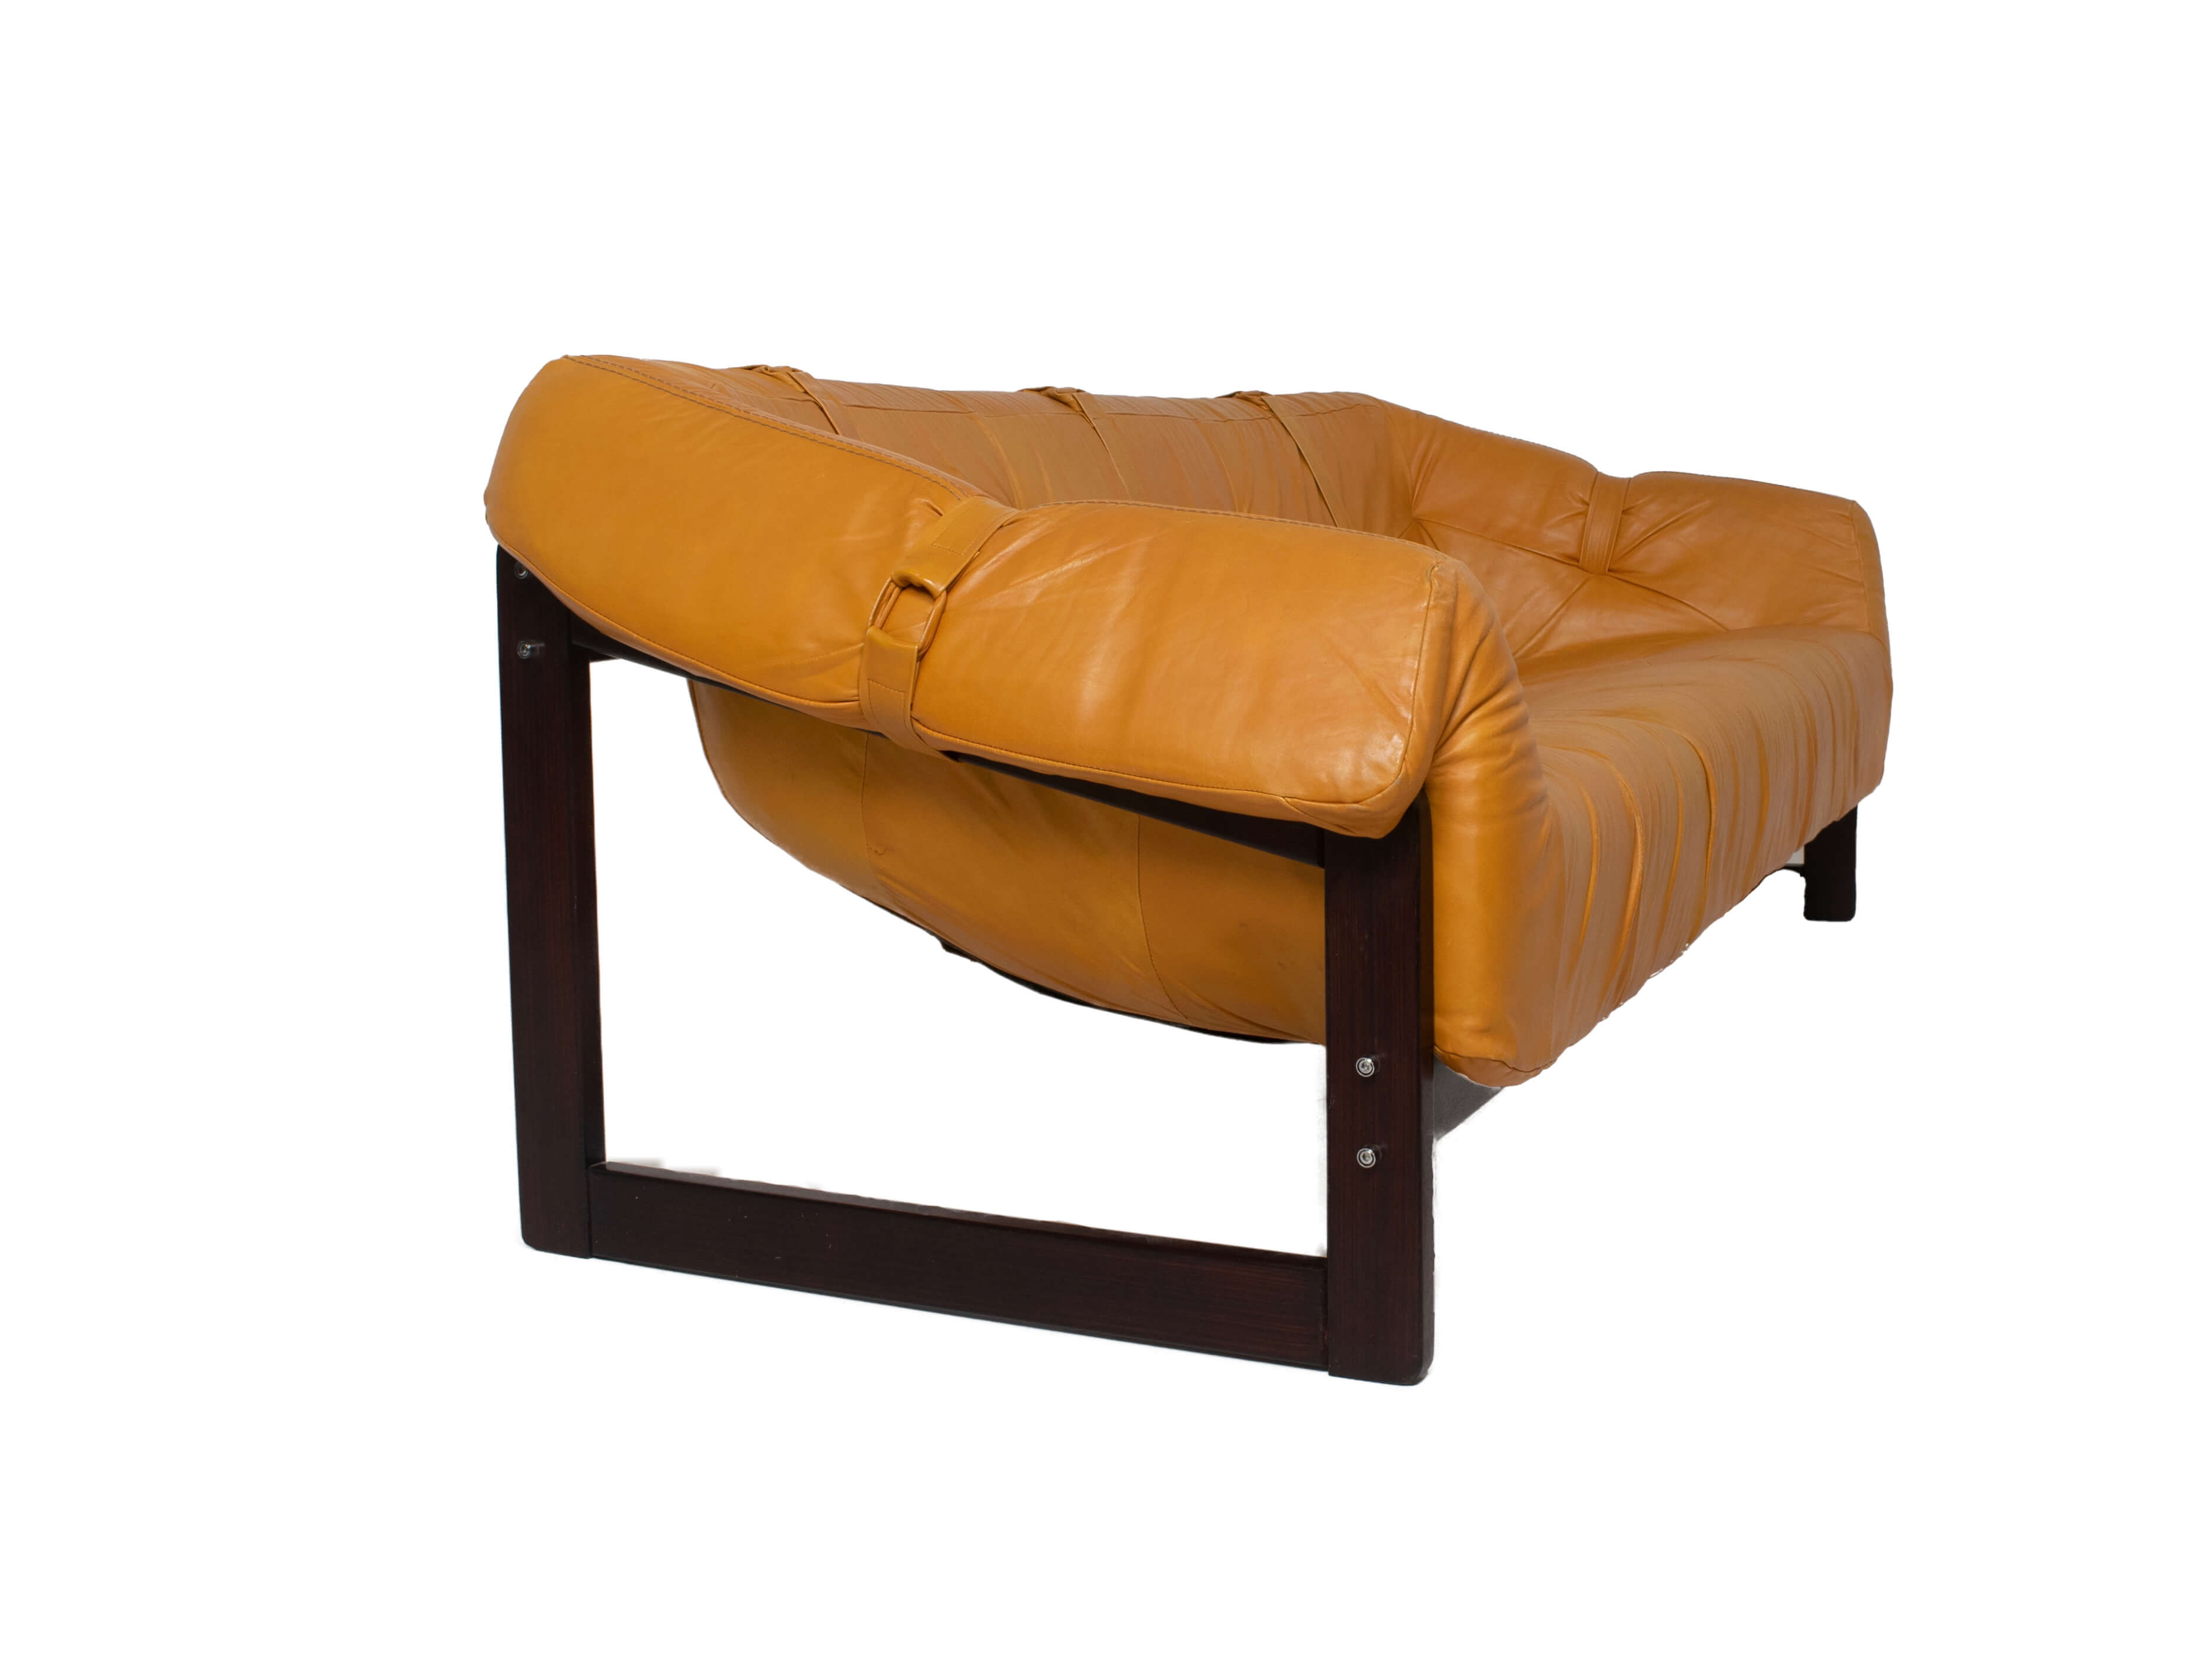 Side view Percival Lafer Sofa MP-091 in Leather and Hardwood, Brazil 1960s